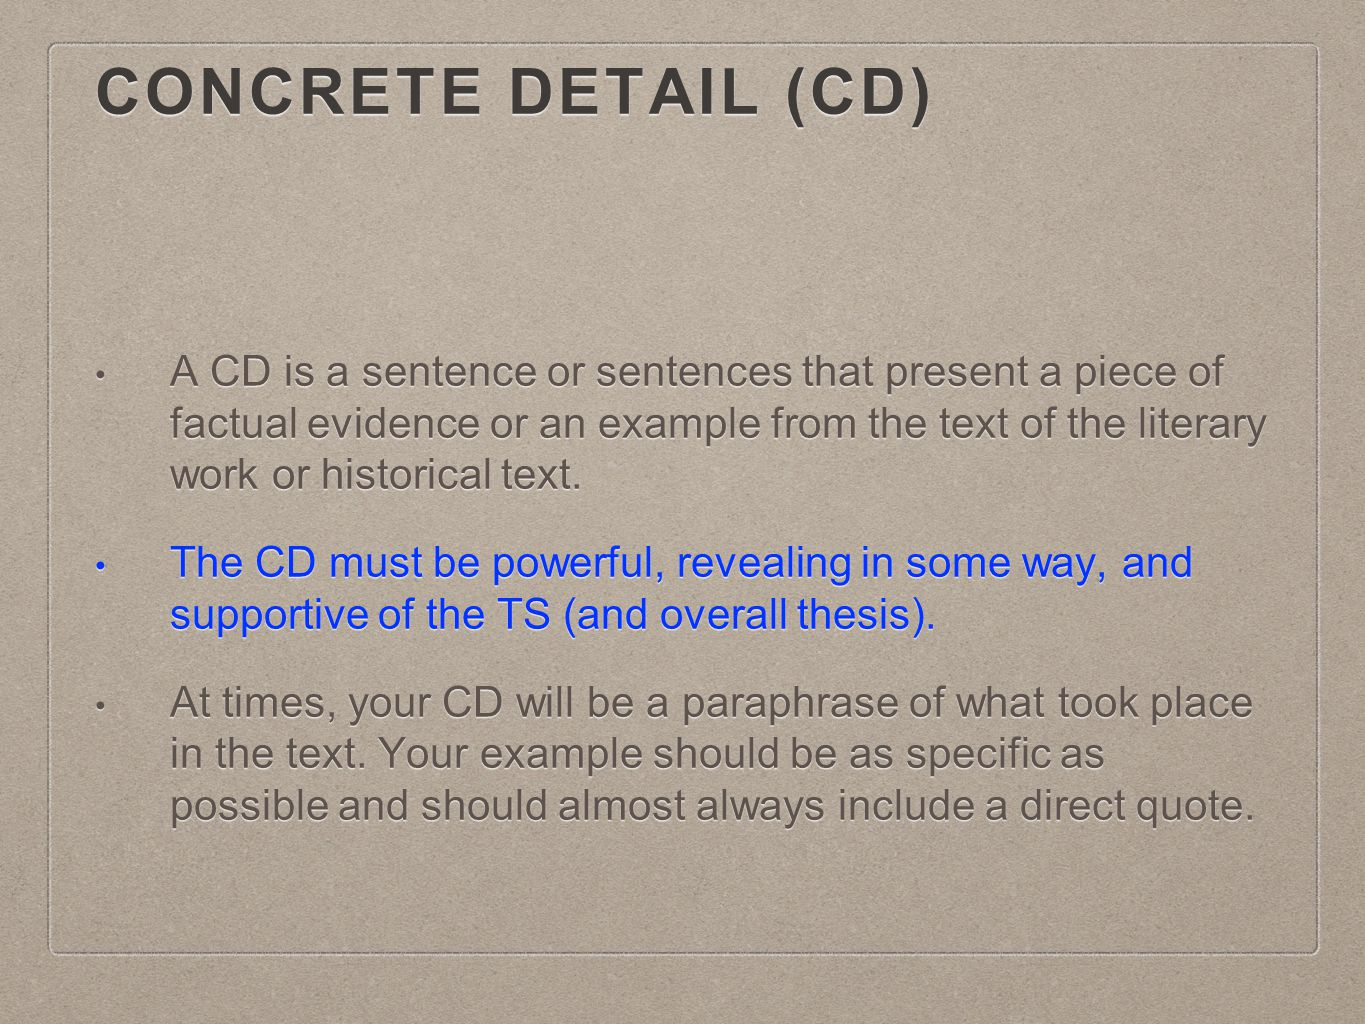 Concrete Detail (CD)